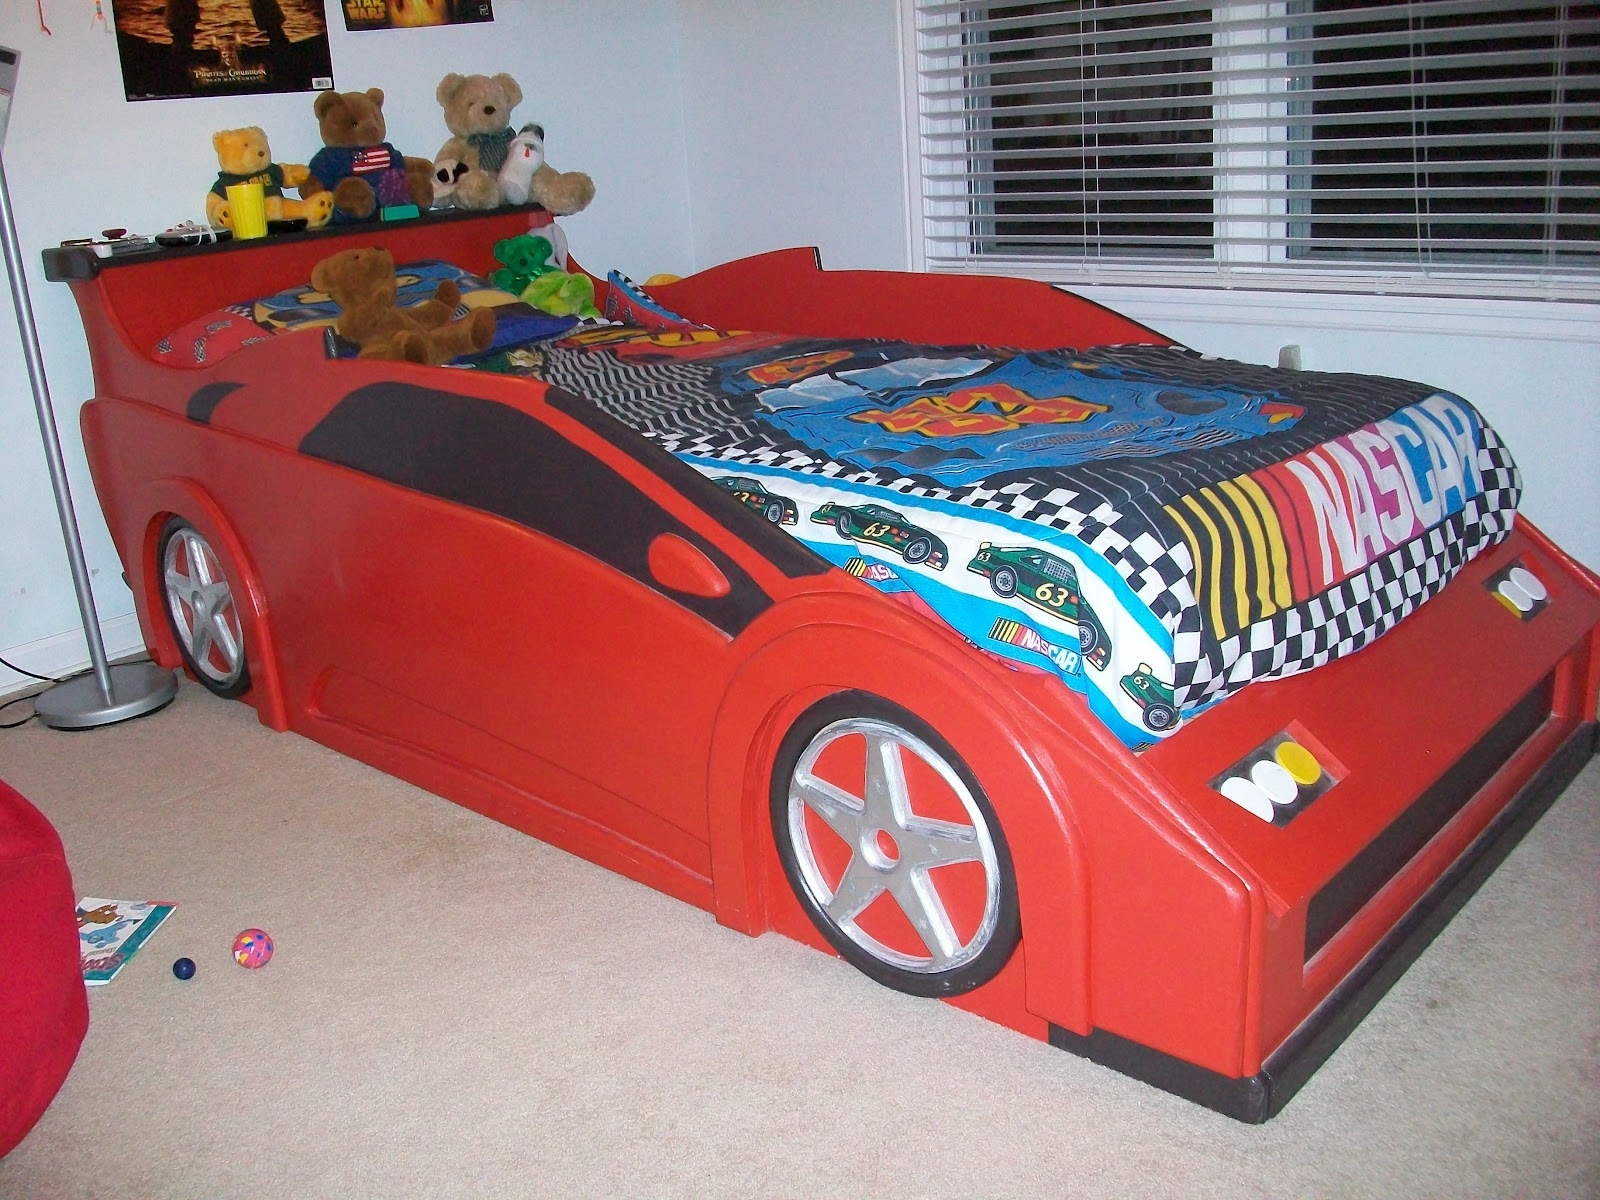 Racecar Beds 28 Images Newjoy V8 Vento Race Car Bed Race Car Bed For Toddlers Great For